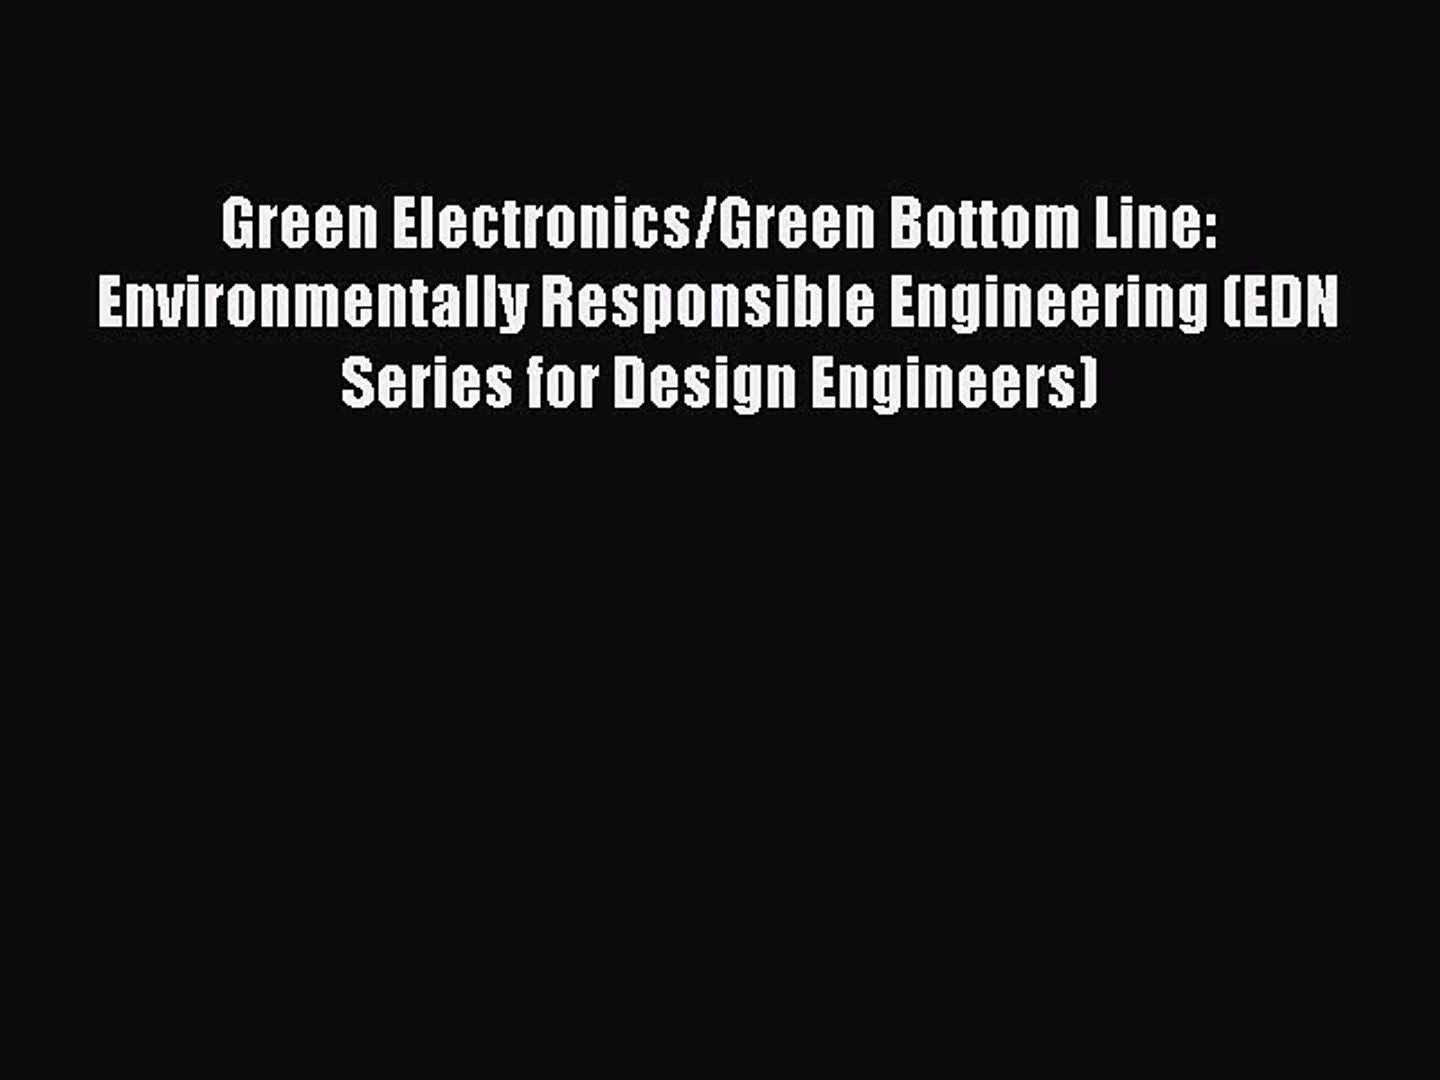 [Read Book] Green Electronics/Green Bottom Line: Environmentally Responsible Engineering (EDN